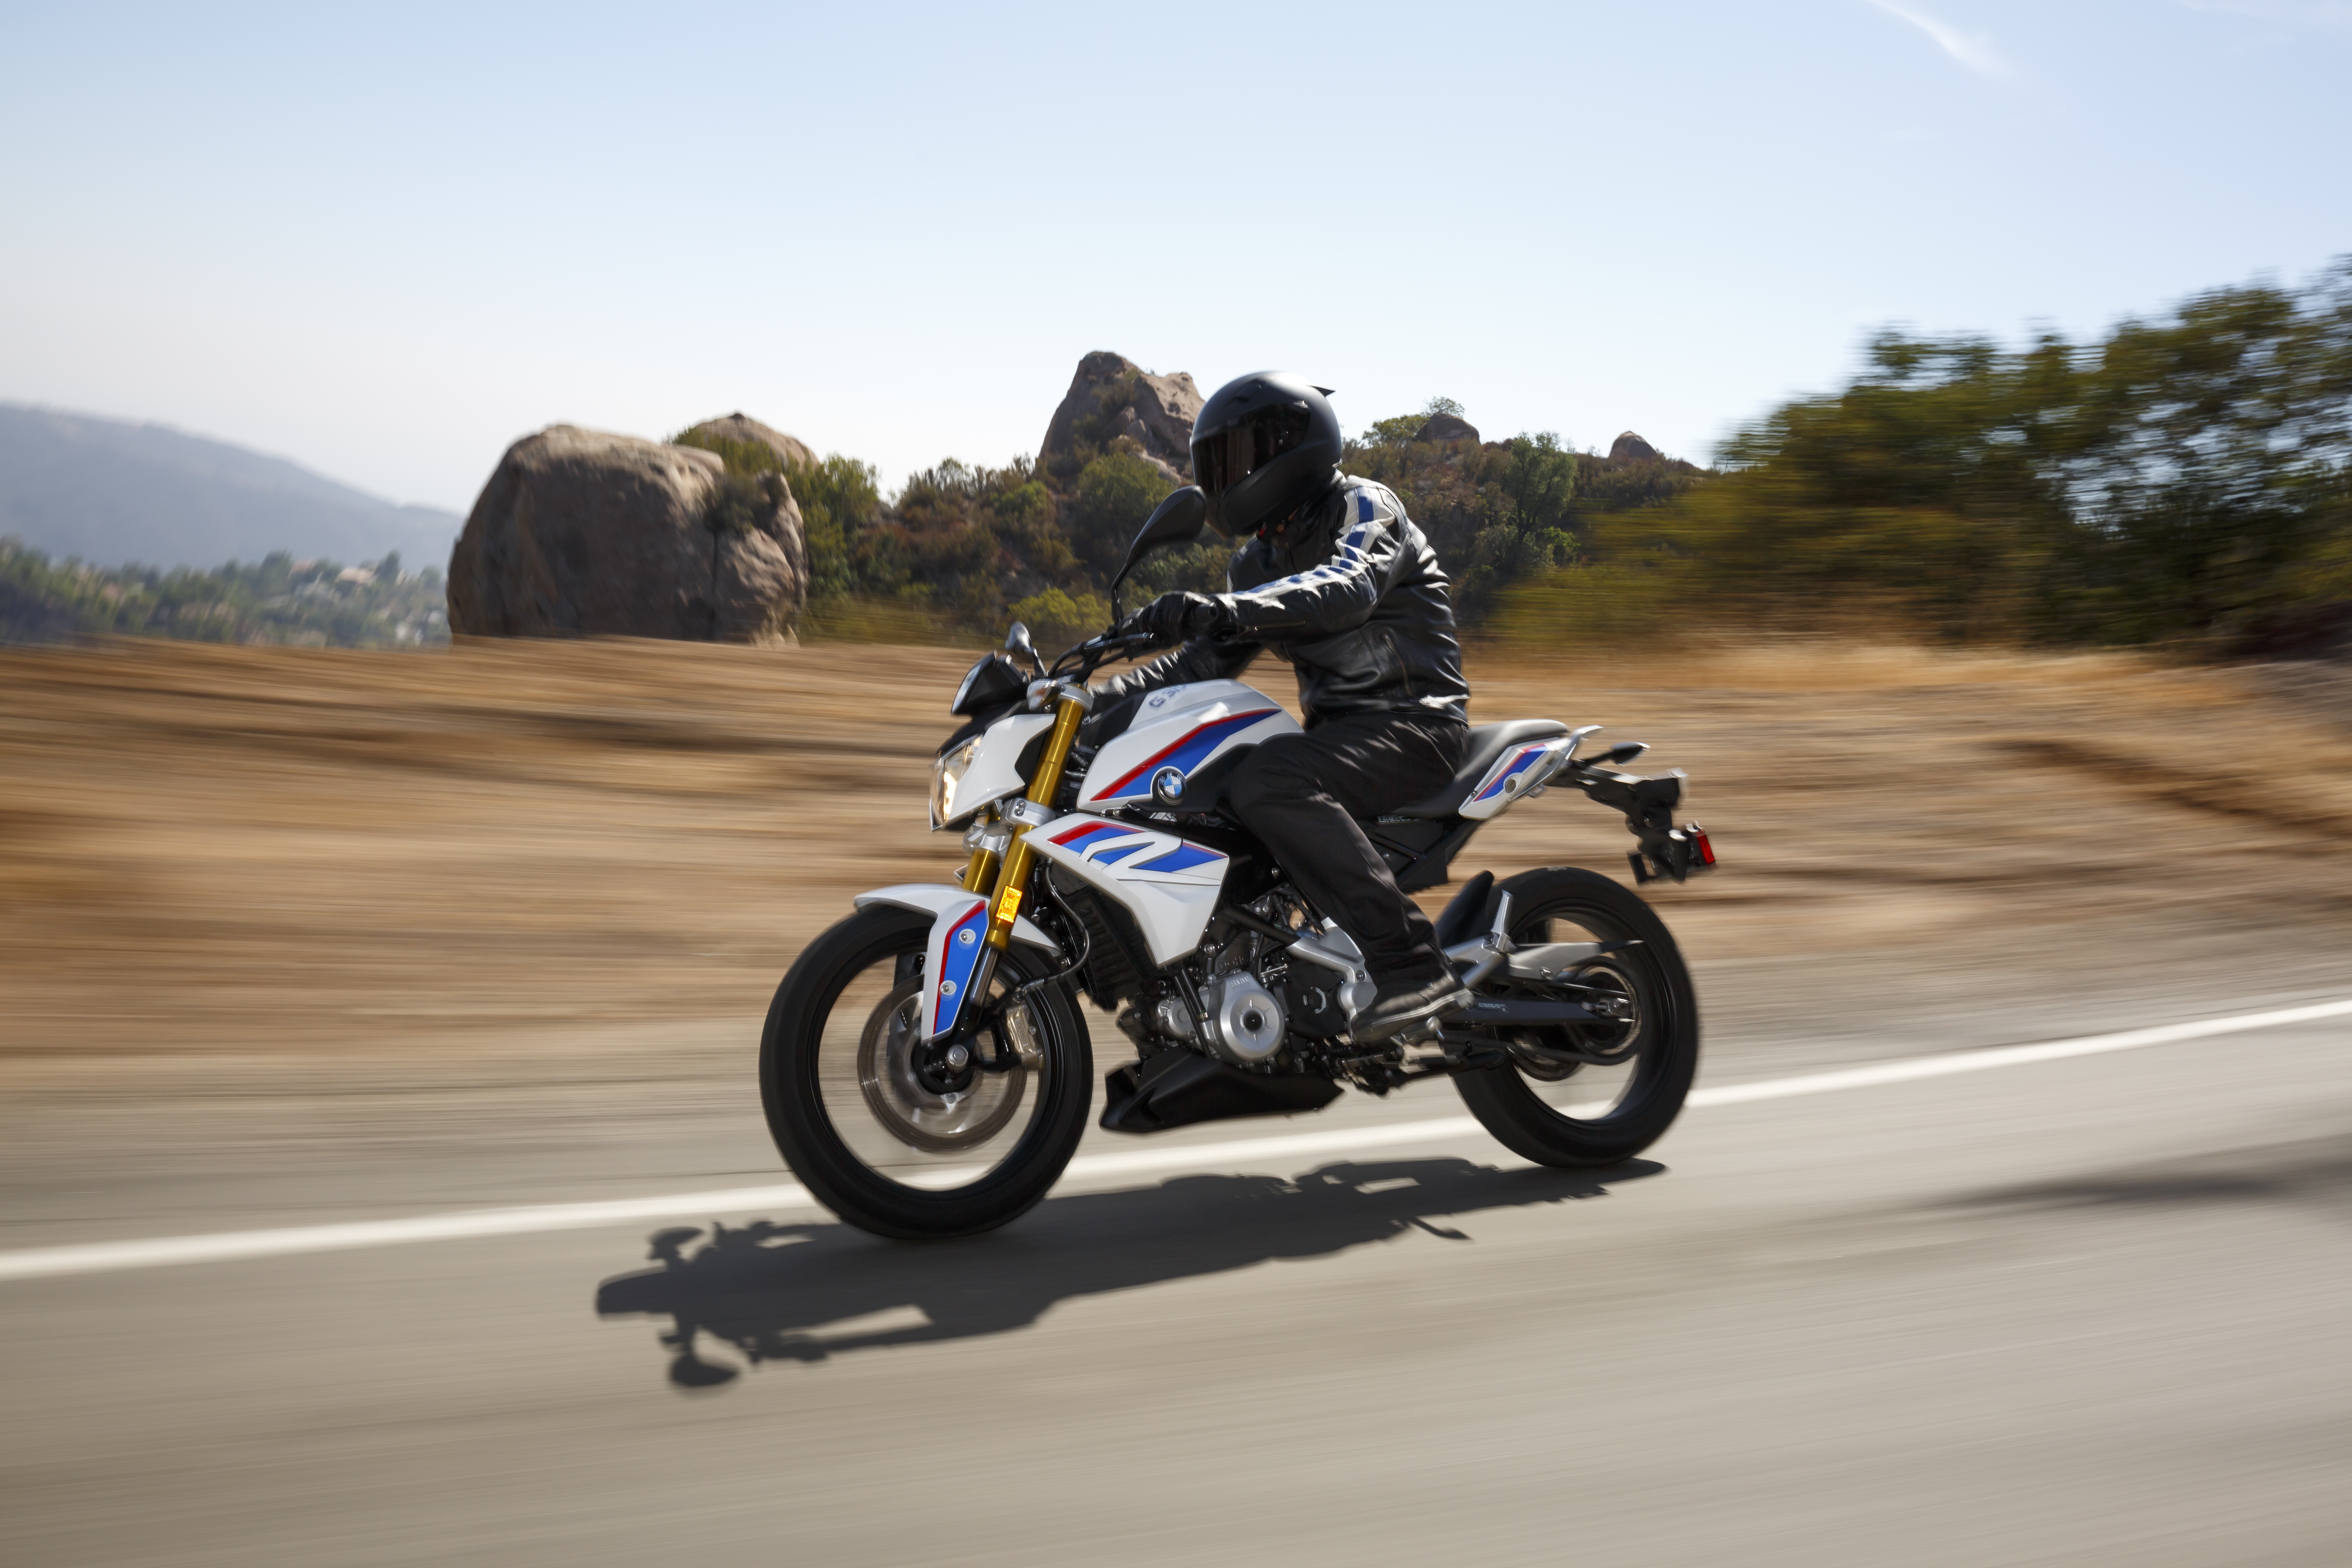 Bmw G 310 R 5k, HD Bikes, 4k Wallpapers, Images